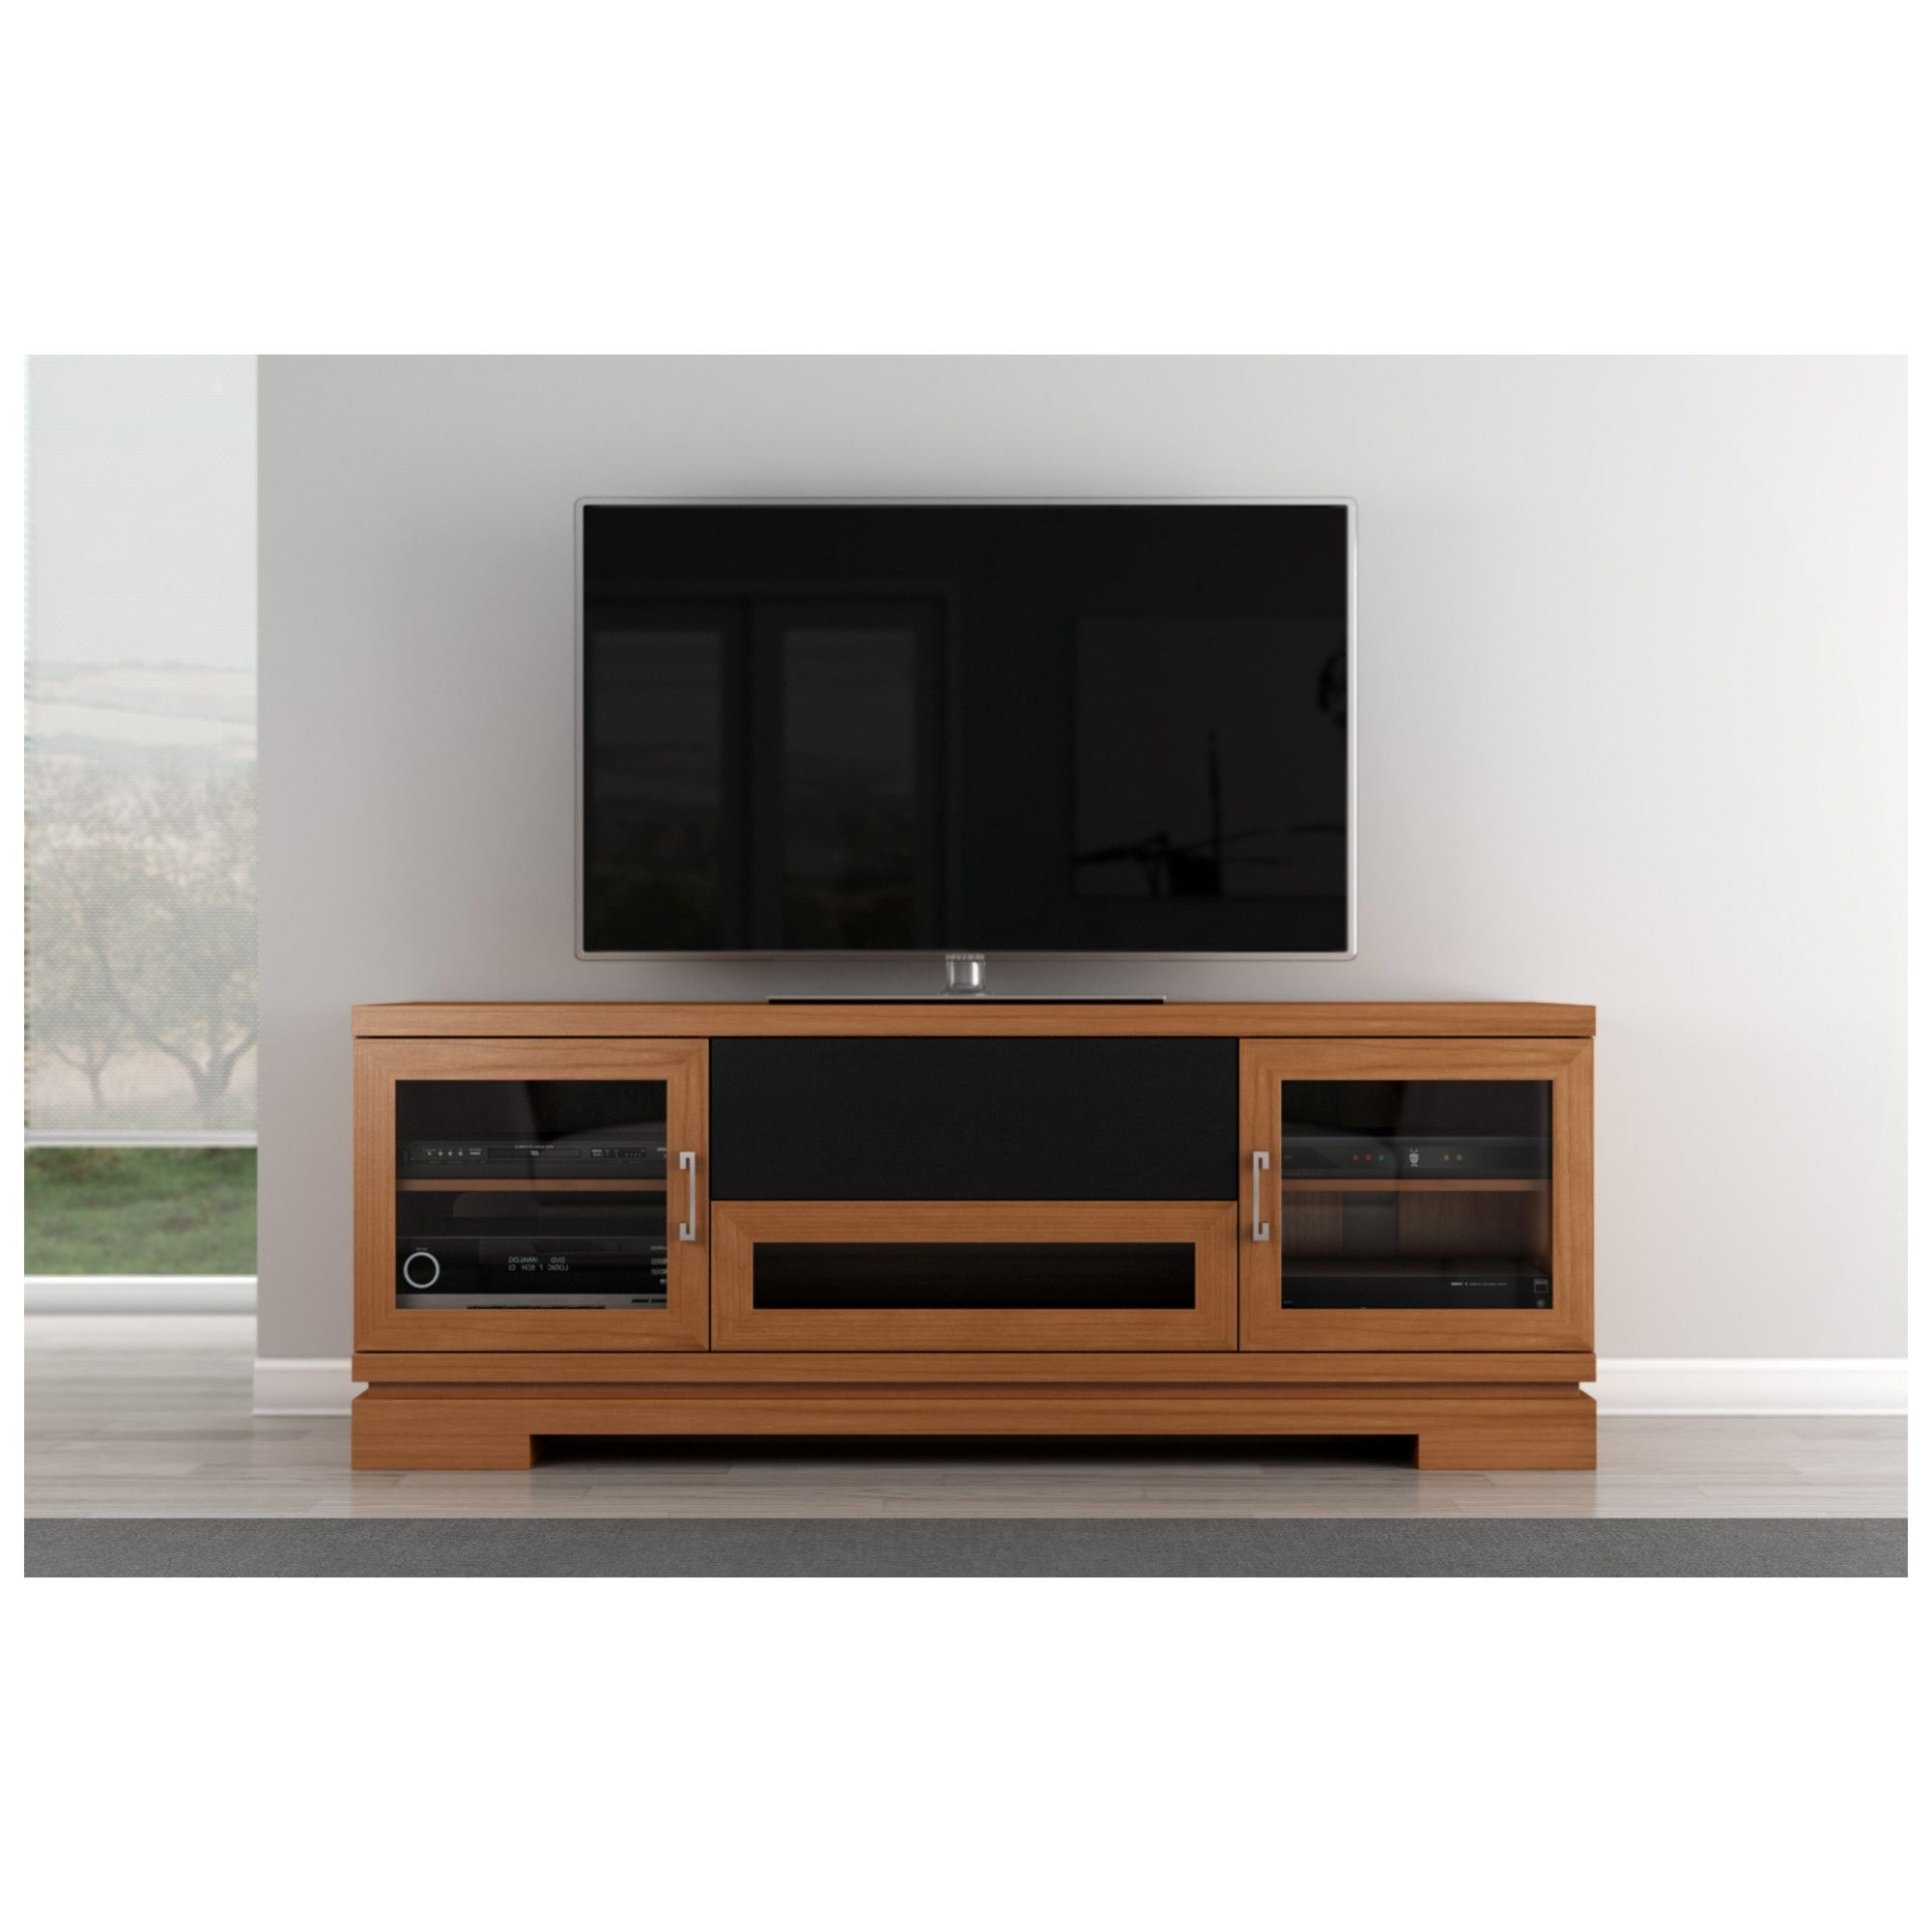 "Preferred Contemporary Modern Tv Stands Pertaining To 70"" Tv Stand Contemporary Media Cabinet W/ Center Speaker Opening In (View 15 of 20)"